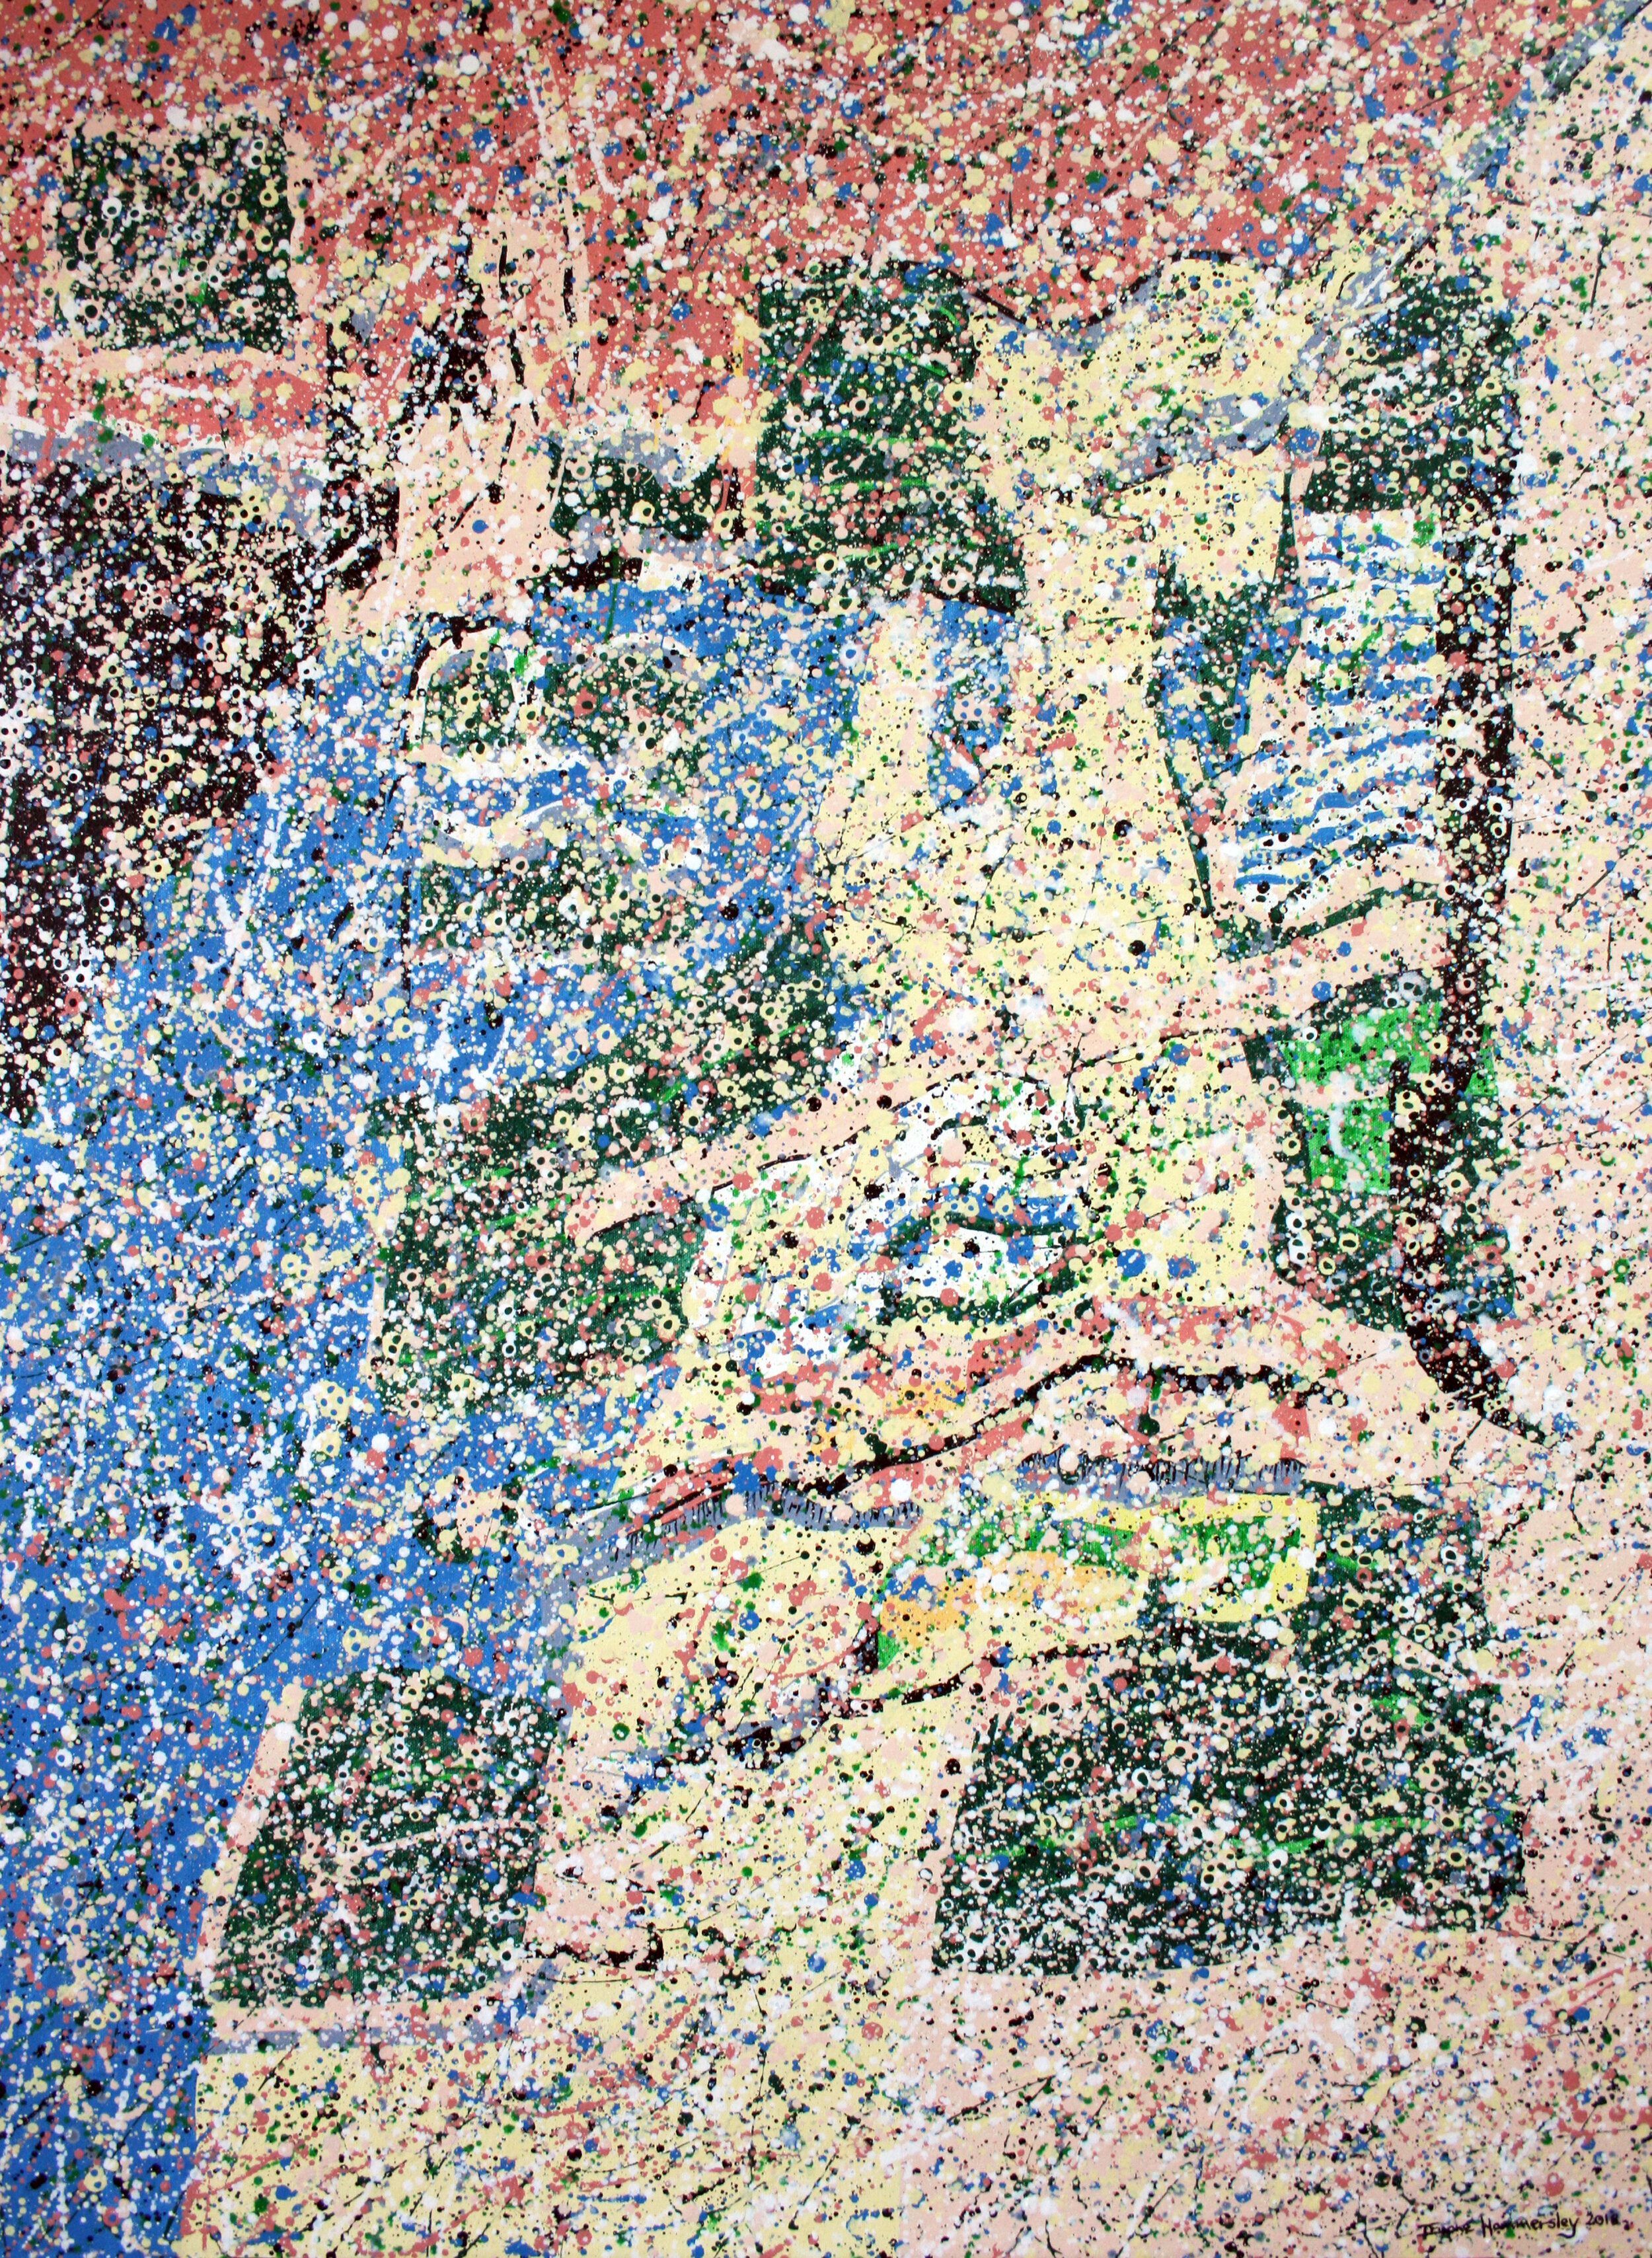 Water-based pointillistic abstraction painting with fragmented shapes and lines. yellow, blue, red, green areas.